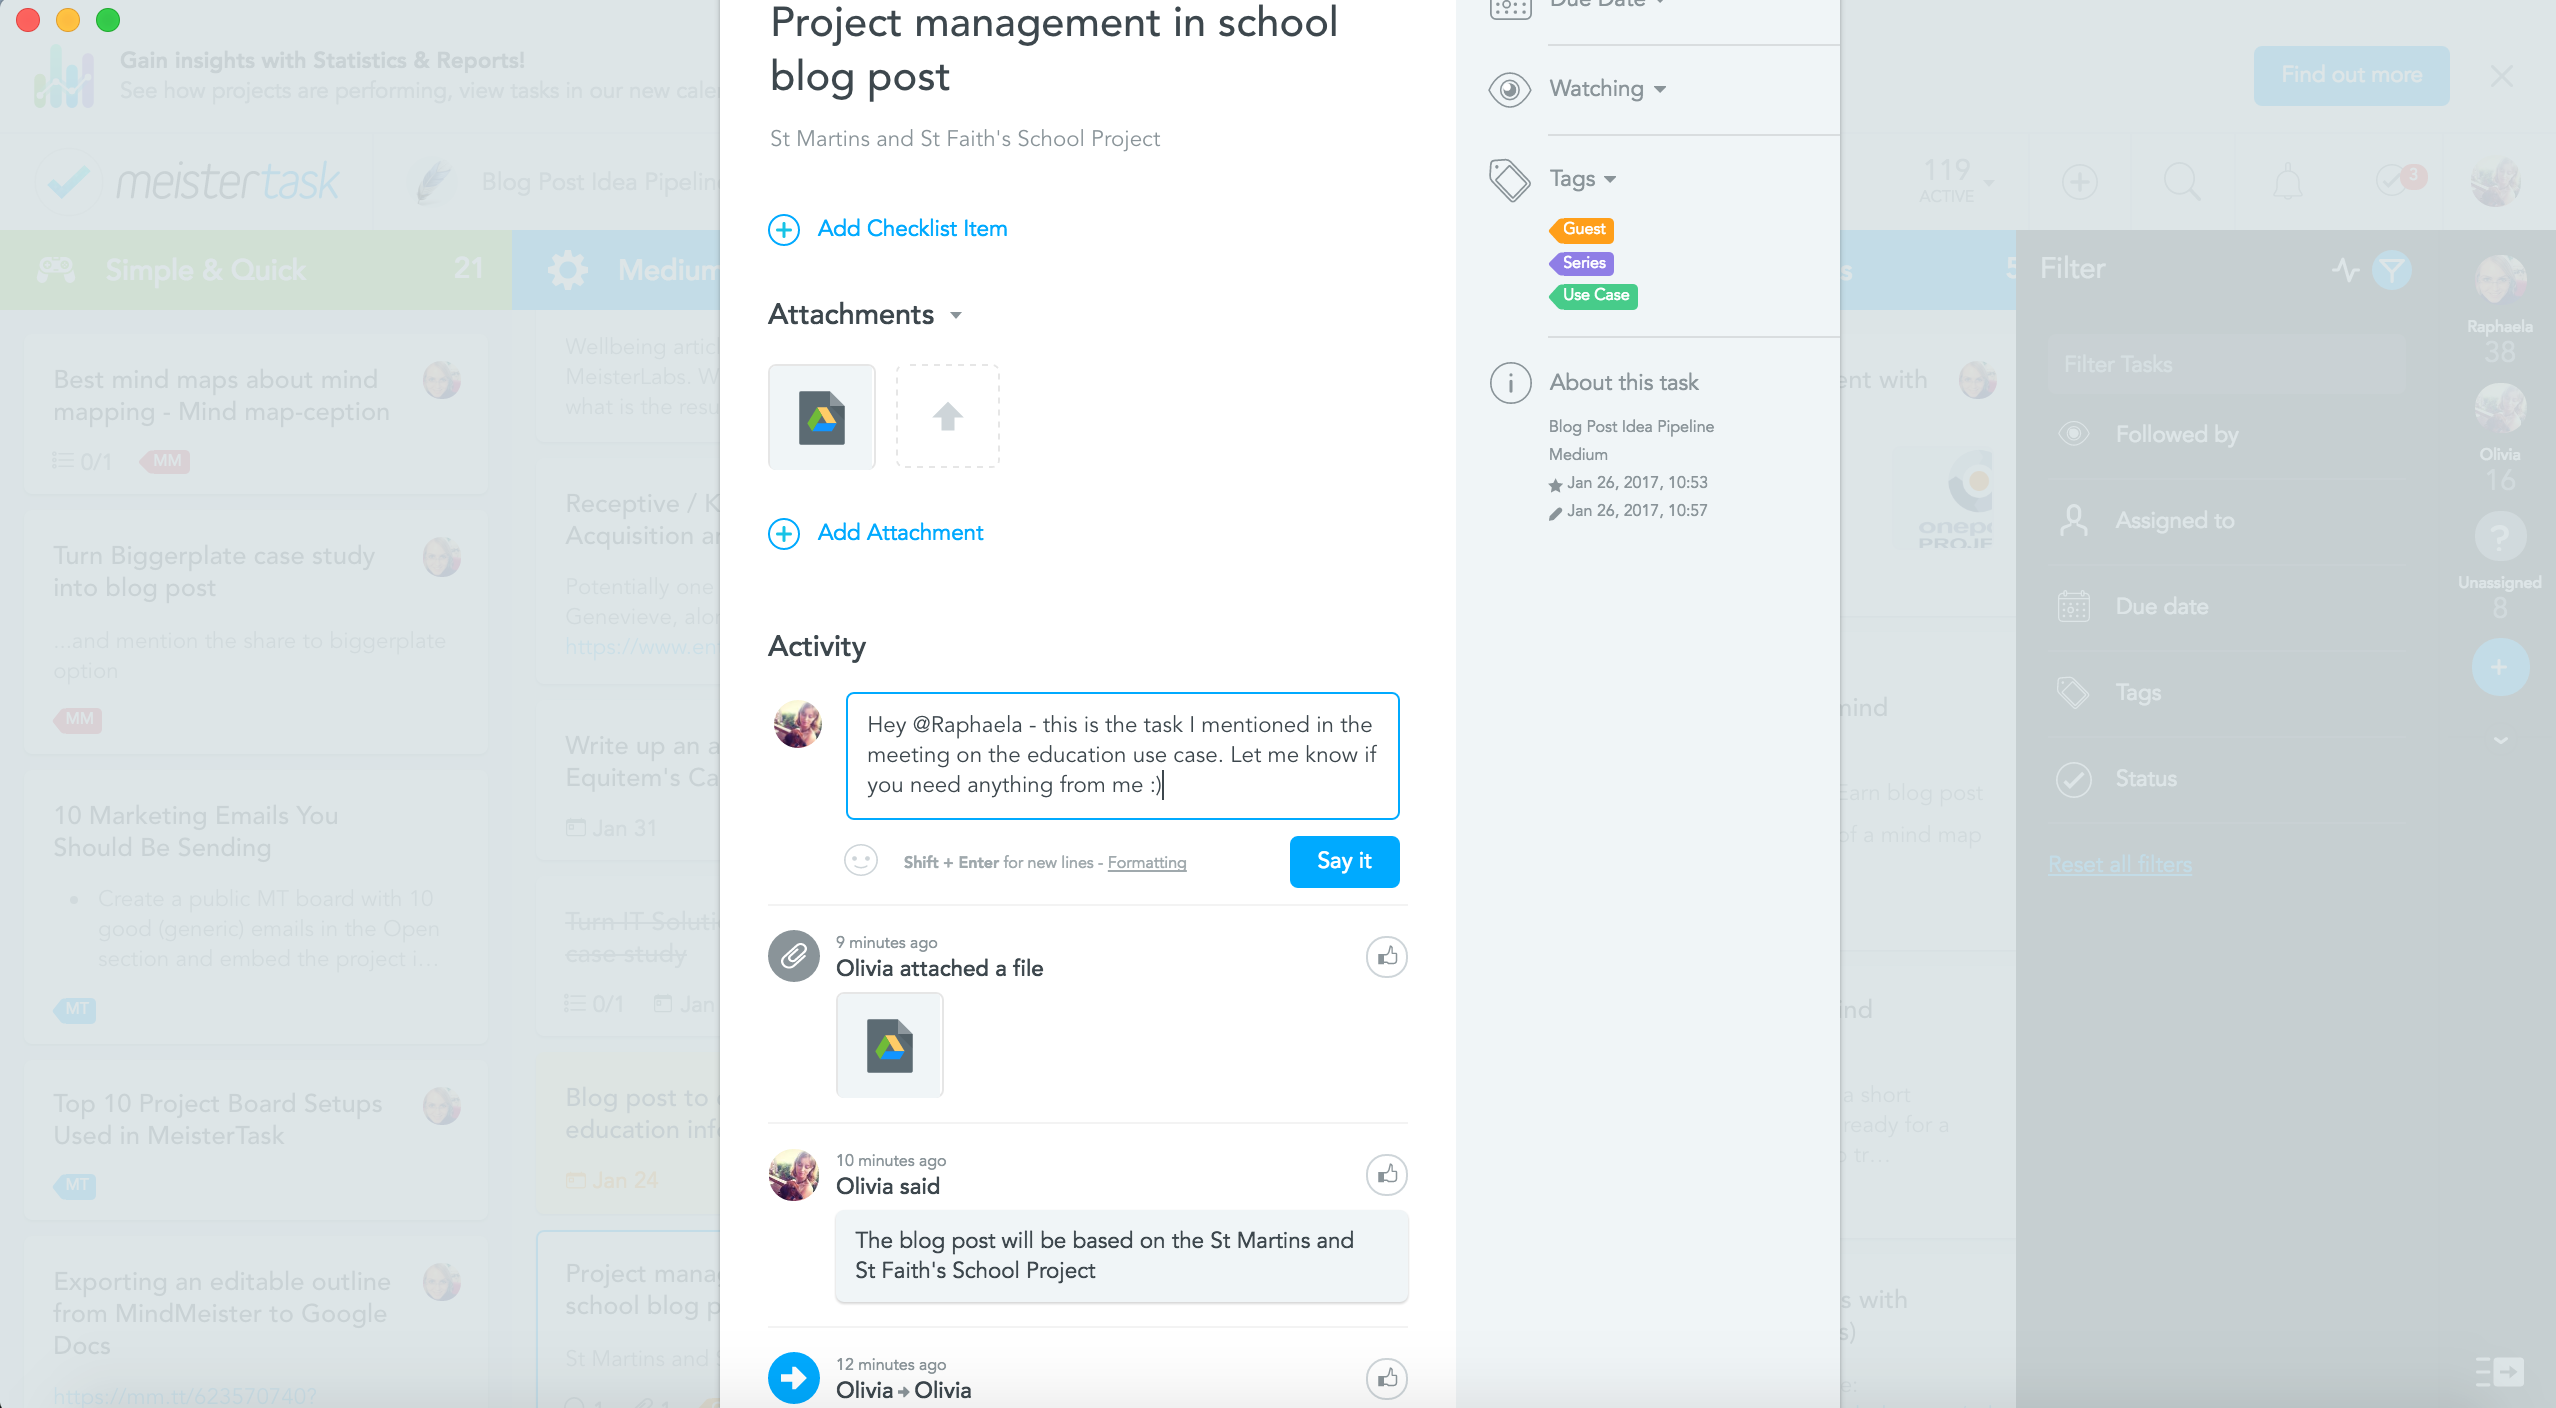 school project management with communication via MeisterTask